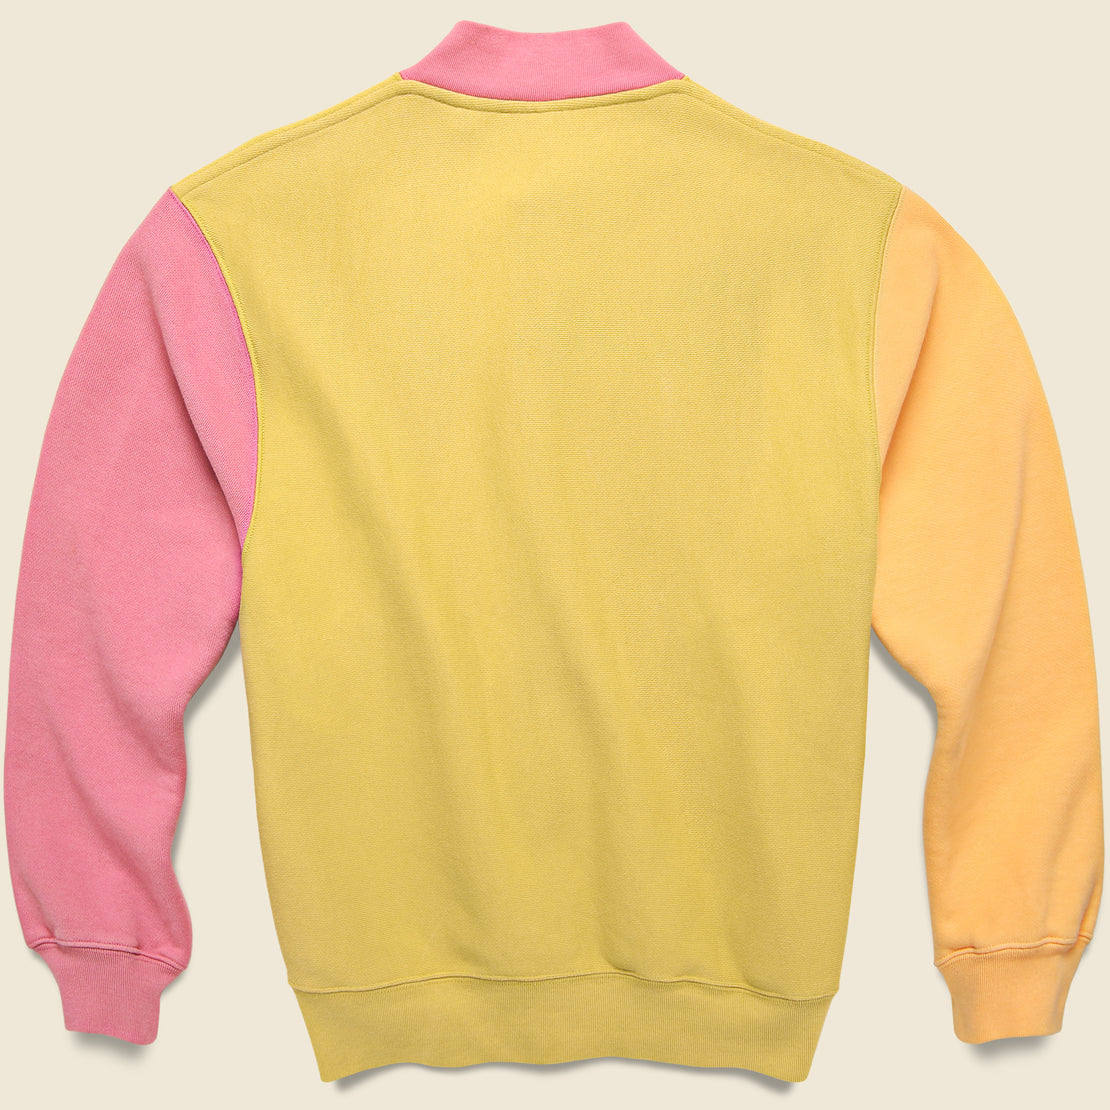 Fleece Cardigan - Lemon/Orange/Pink/Tan